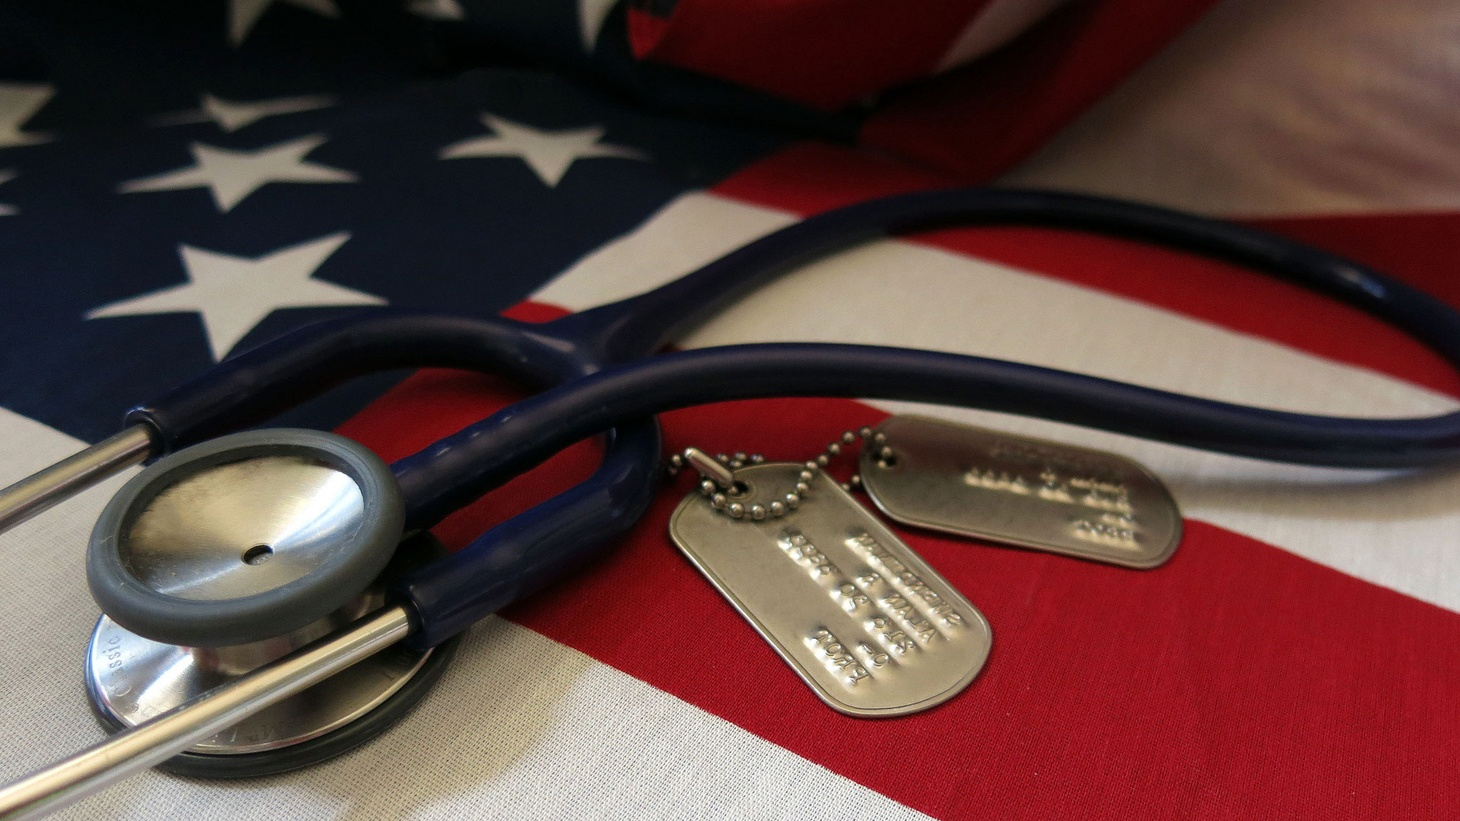 It's been two years since the scandal first broke about overlong wait-times for veterans seeking medical care -- but the billions spent didn't fix the problem and in some instances may have made things worse -- that's according to a new federal report.